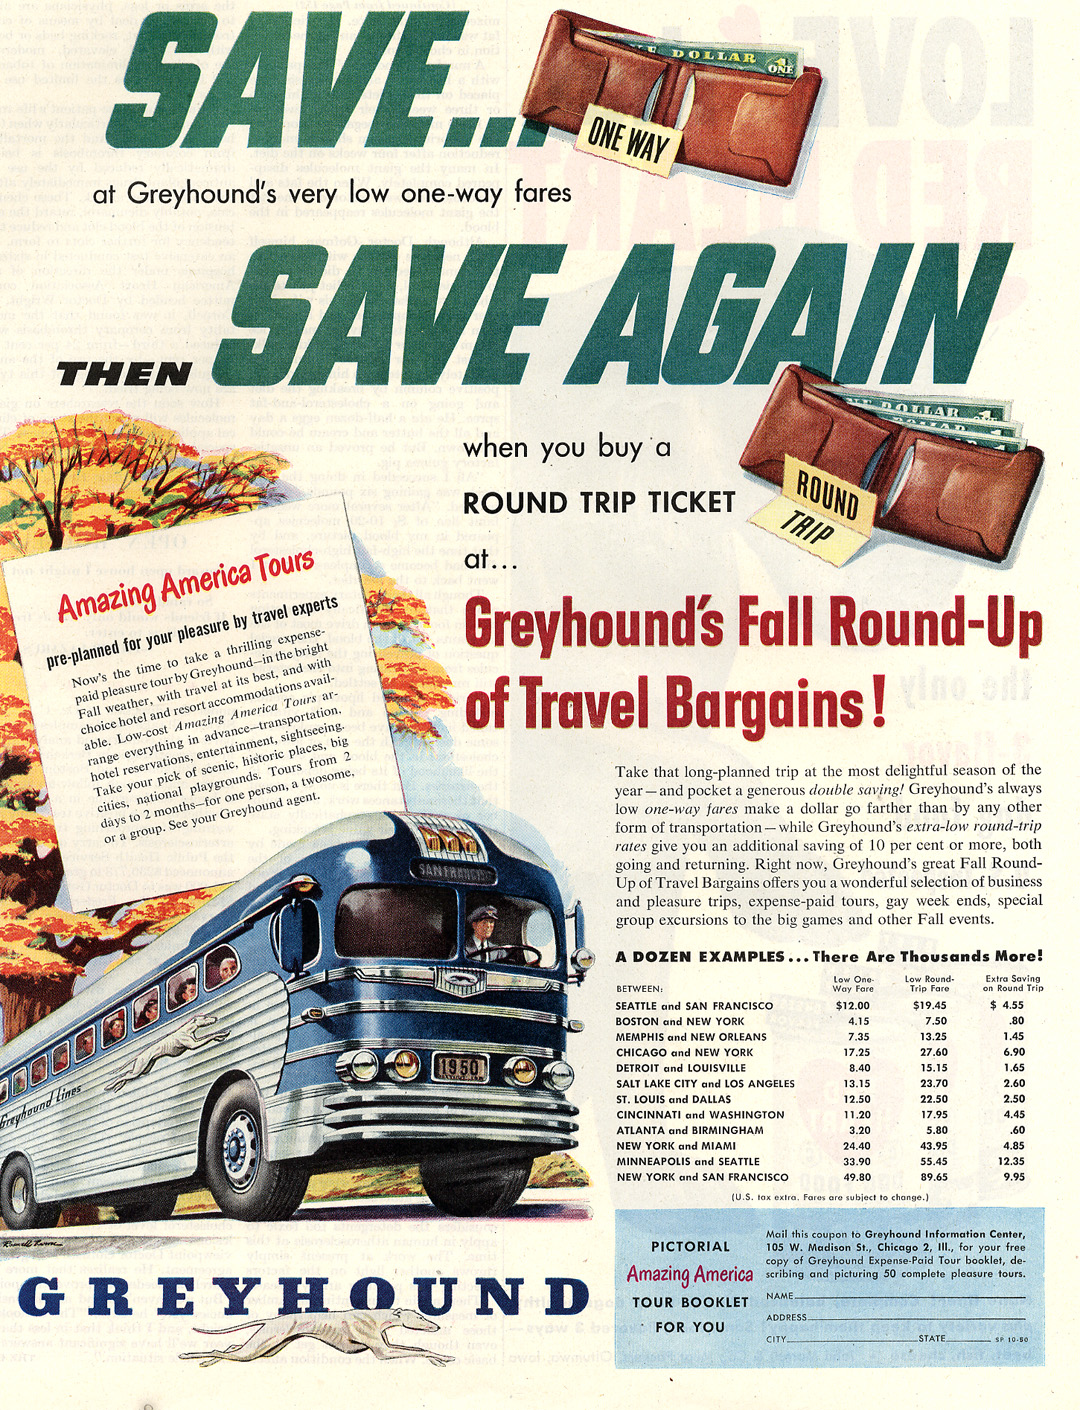 The World of the Car - the Greyhound Bus